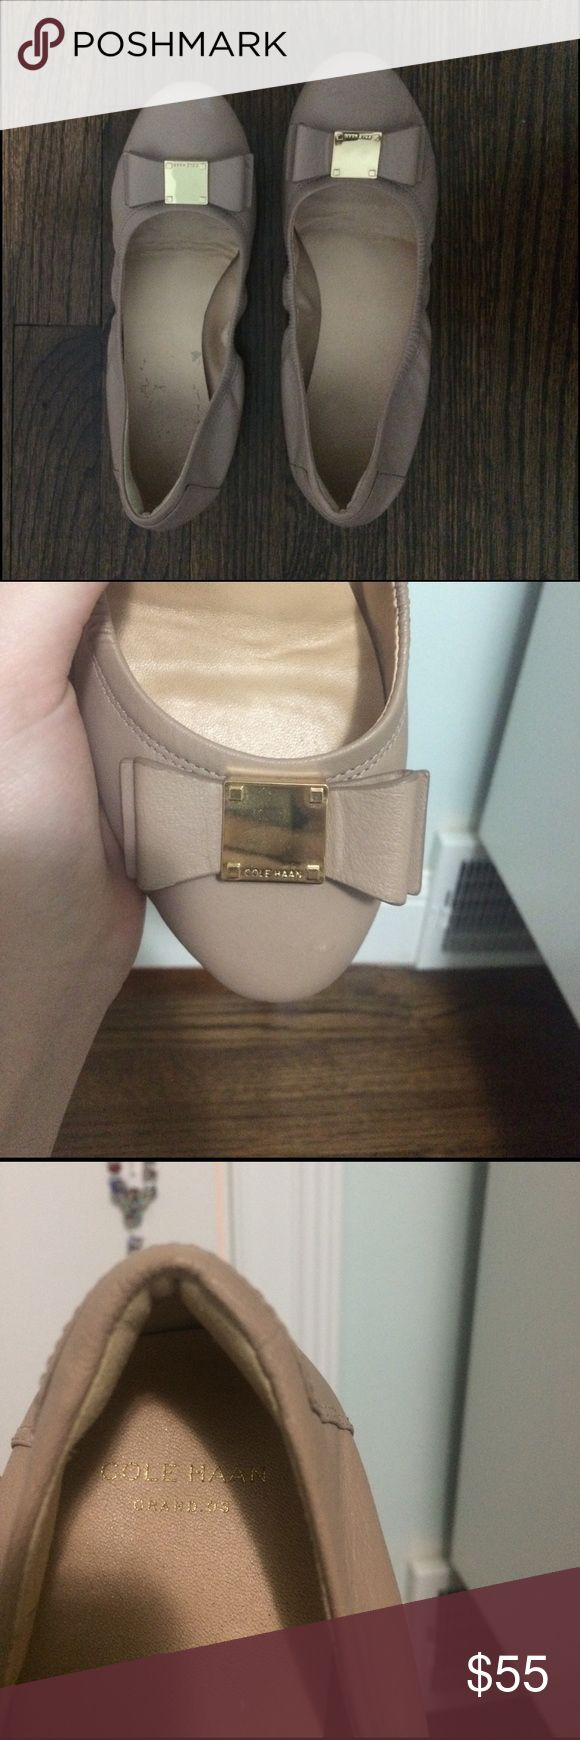 Cole Haan Tali Bow flats Cole Haan nude leather ballet flats with a decorative bow. Worn only a few times. Have silver numbers on the sole Cole Haan Shoes Flats & Loafers